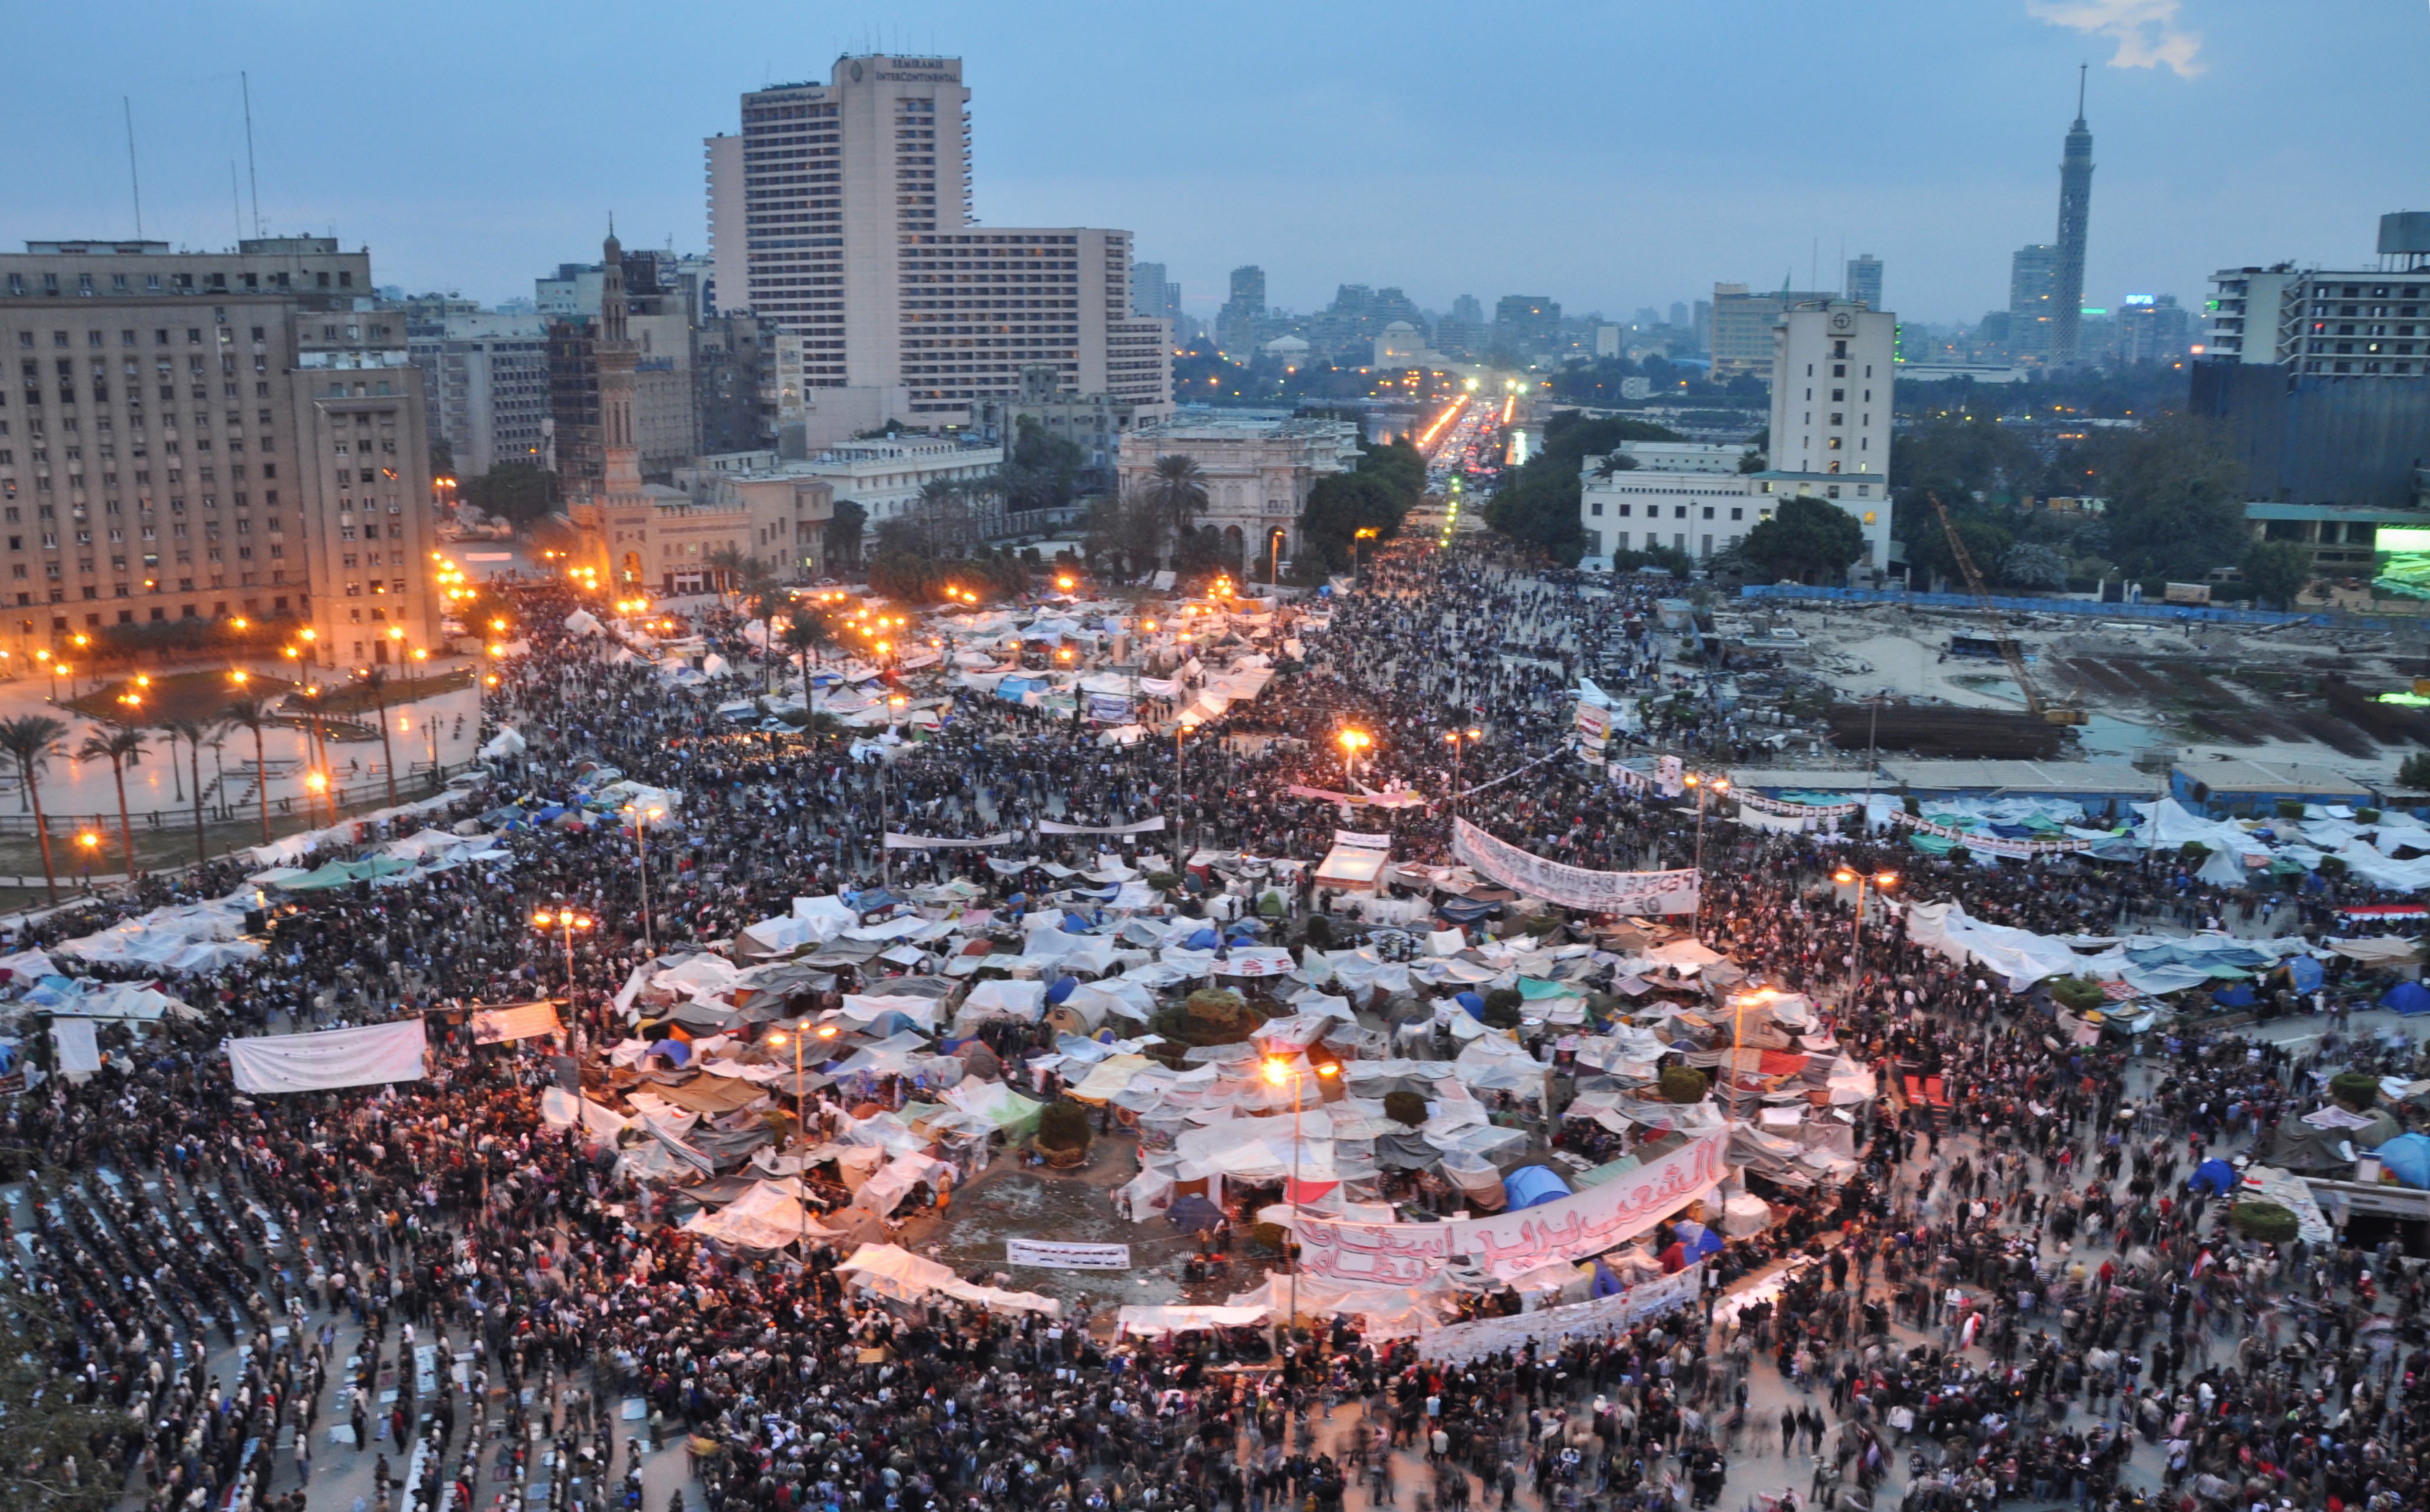 Tahrir Square in February 2011